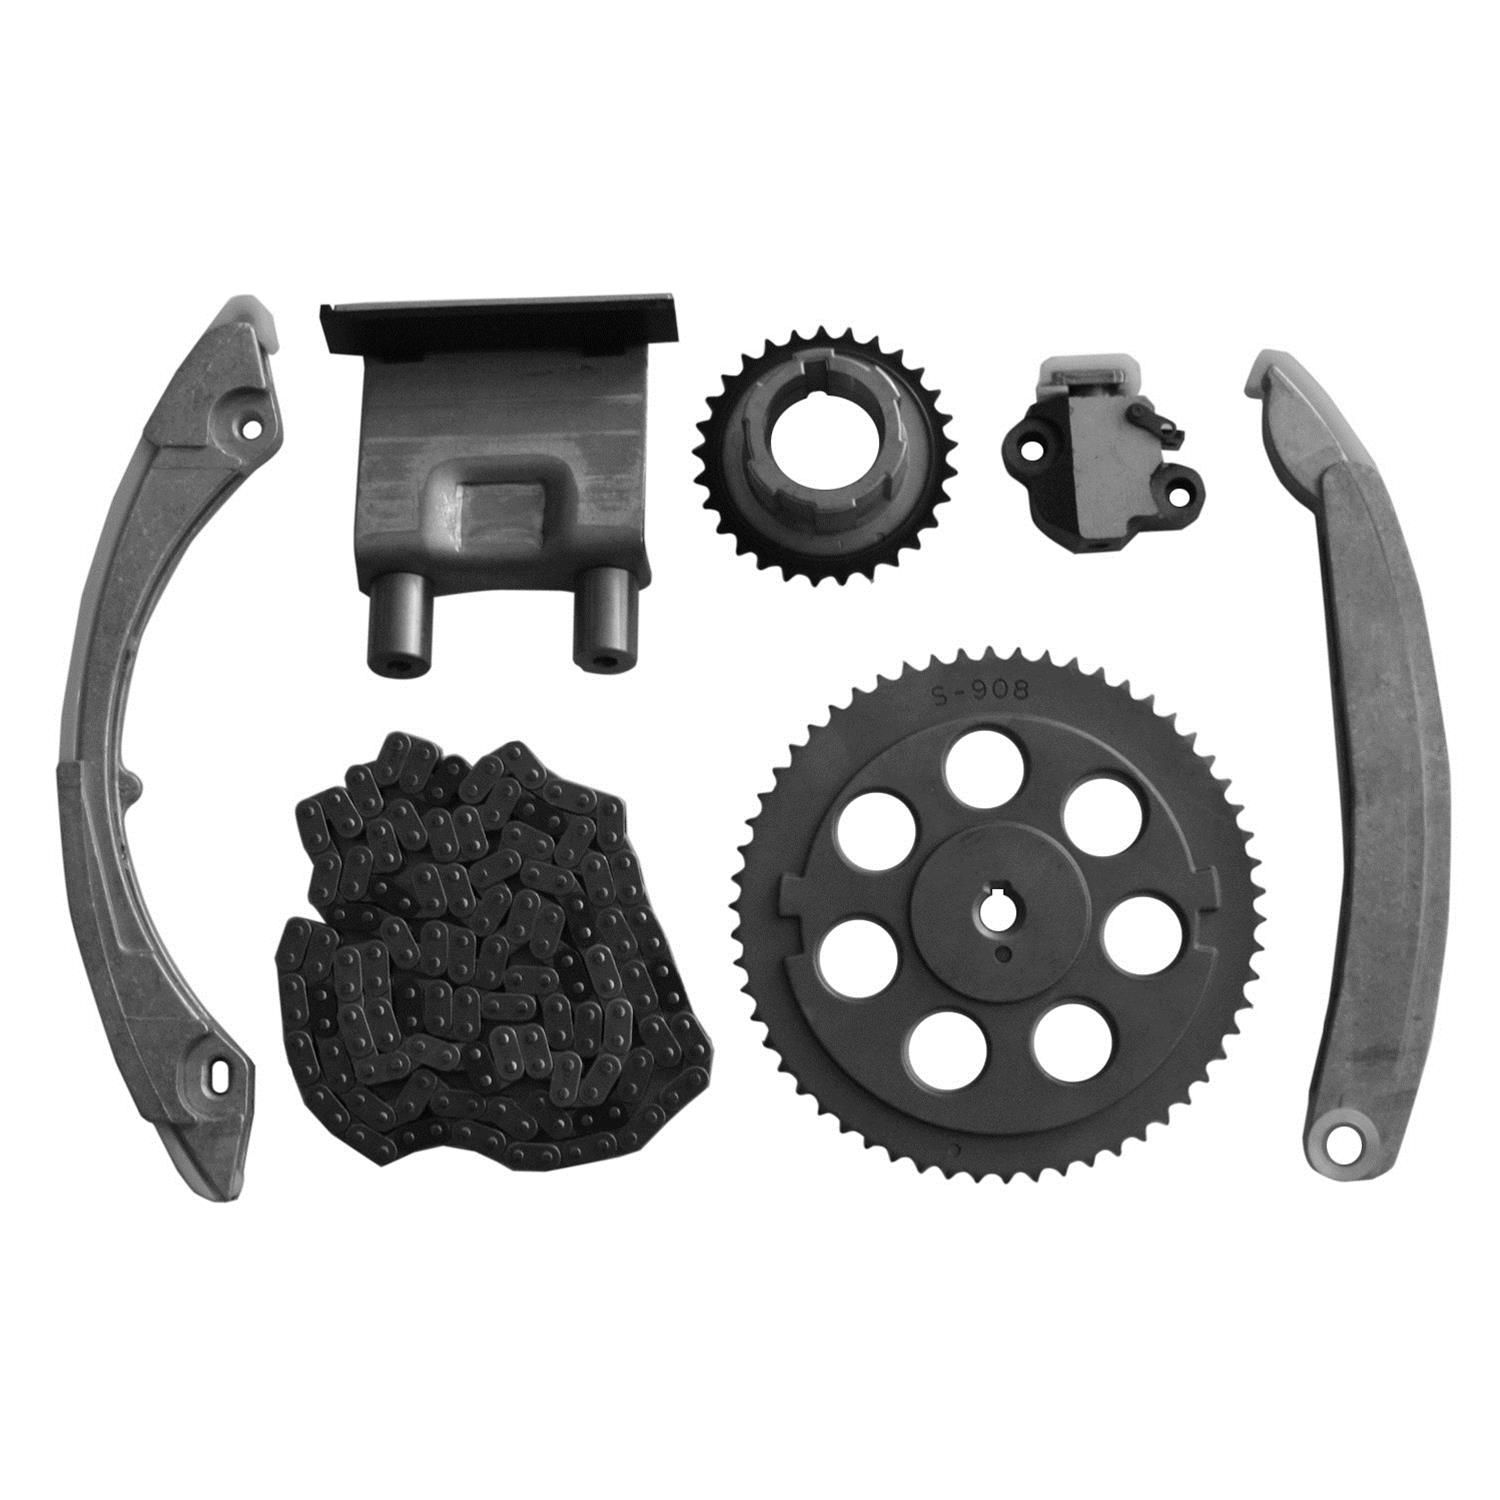 Cloyes 9-0195S Timing Chain